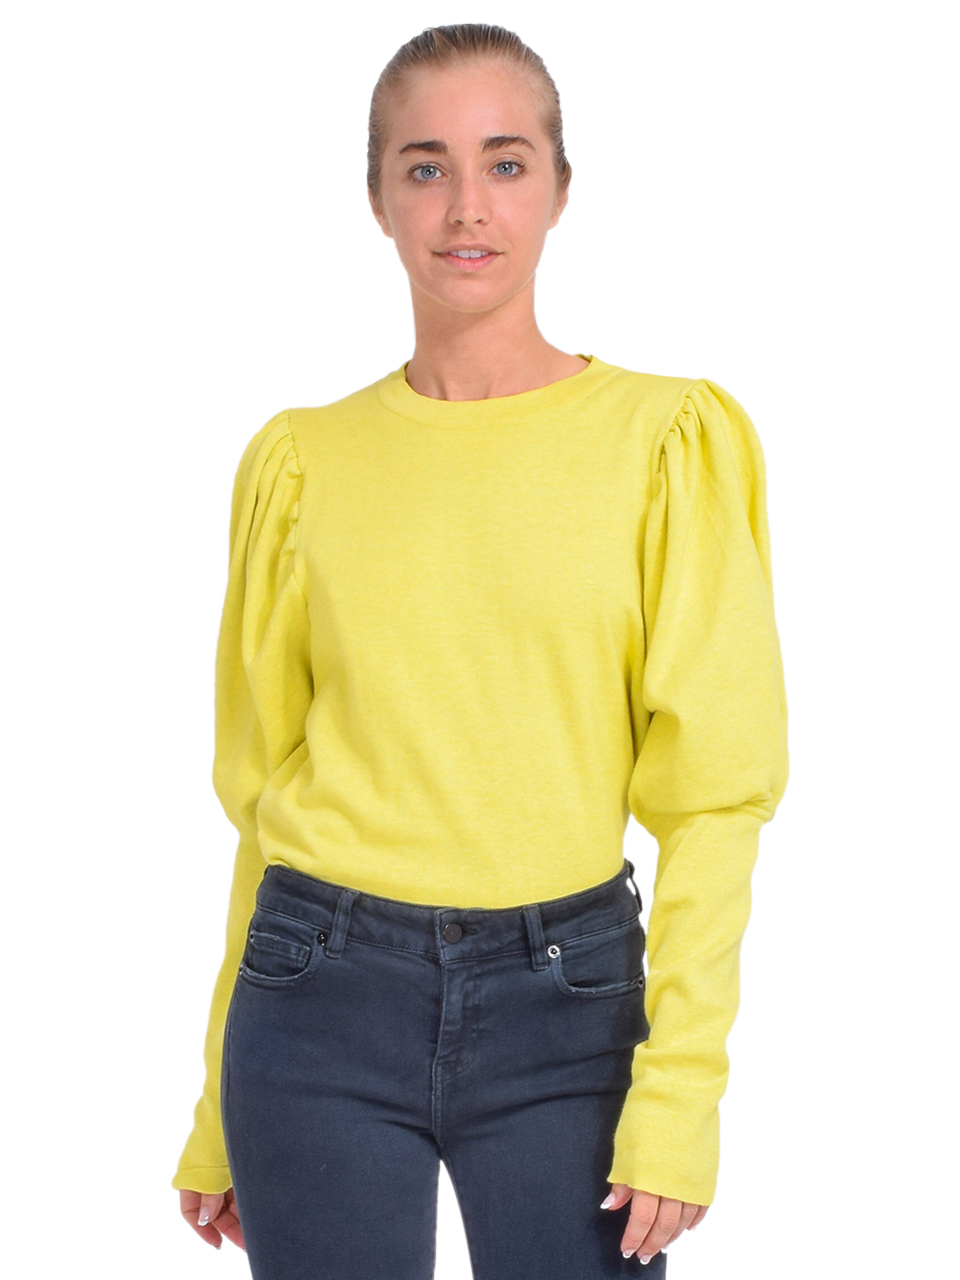 MISA Kali Sweater in Chartreuse Front View  x1https://cdn11.bigcommerce.com/s-3wu6n/products/33743/images/112012/DSC_0733_Full__50348.1614380134.244.365.jpg?c=2x2